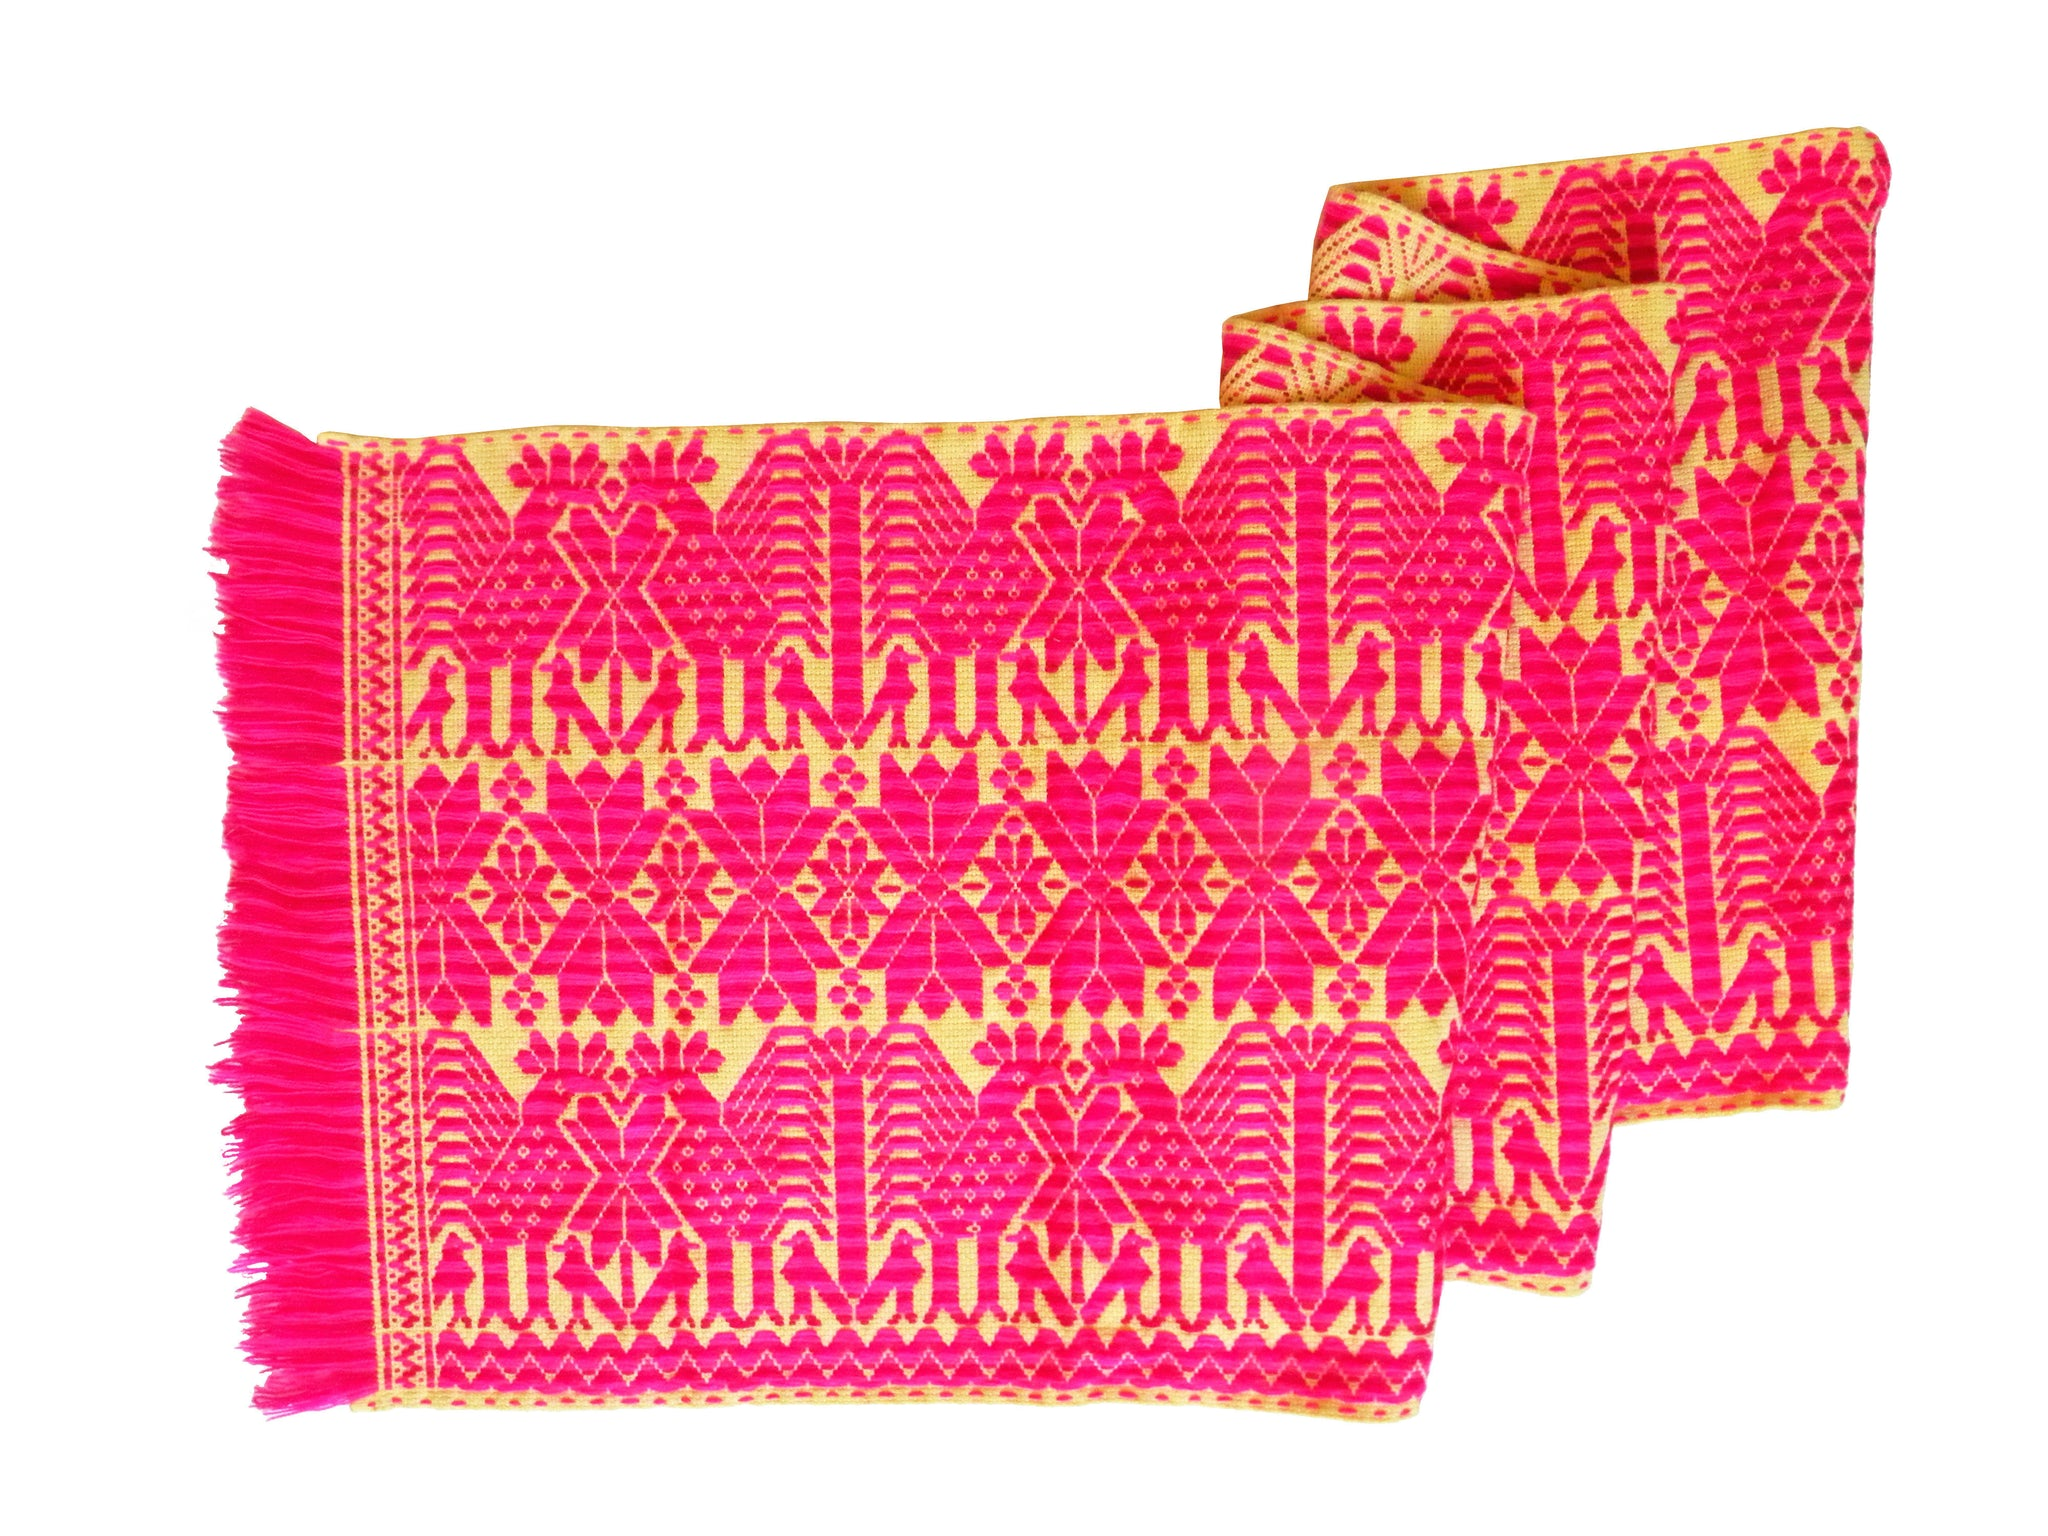 Camino de Mesa Otomí / Otomi Table Runner